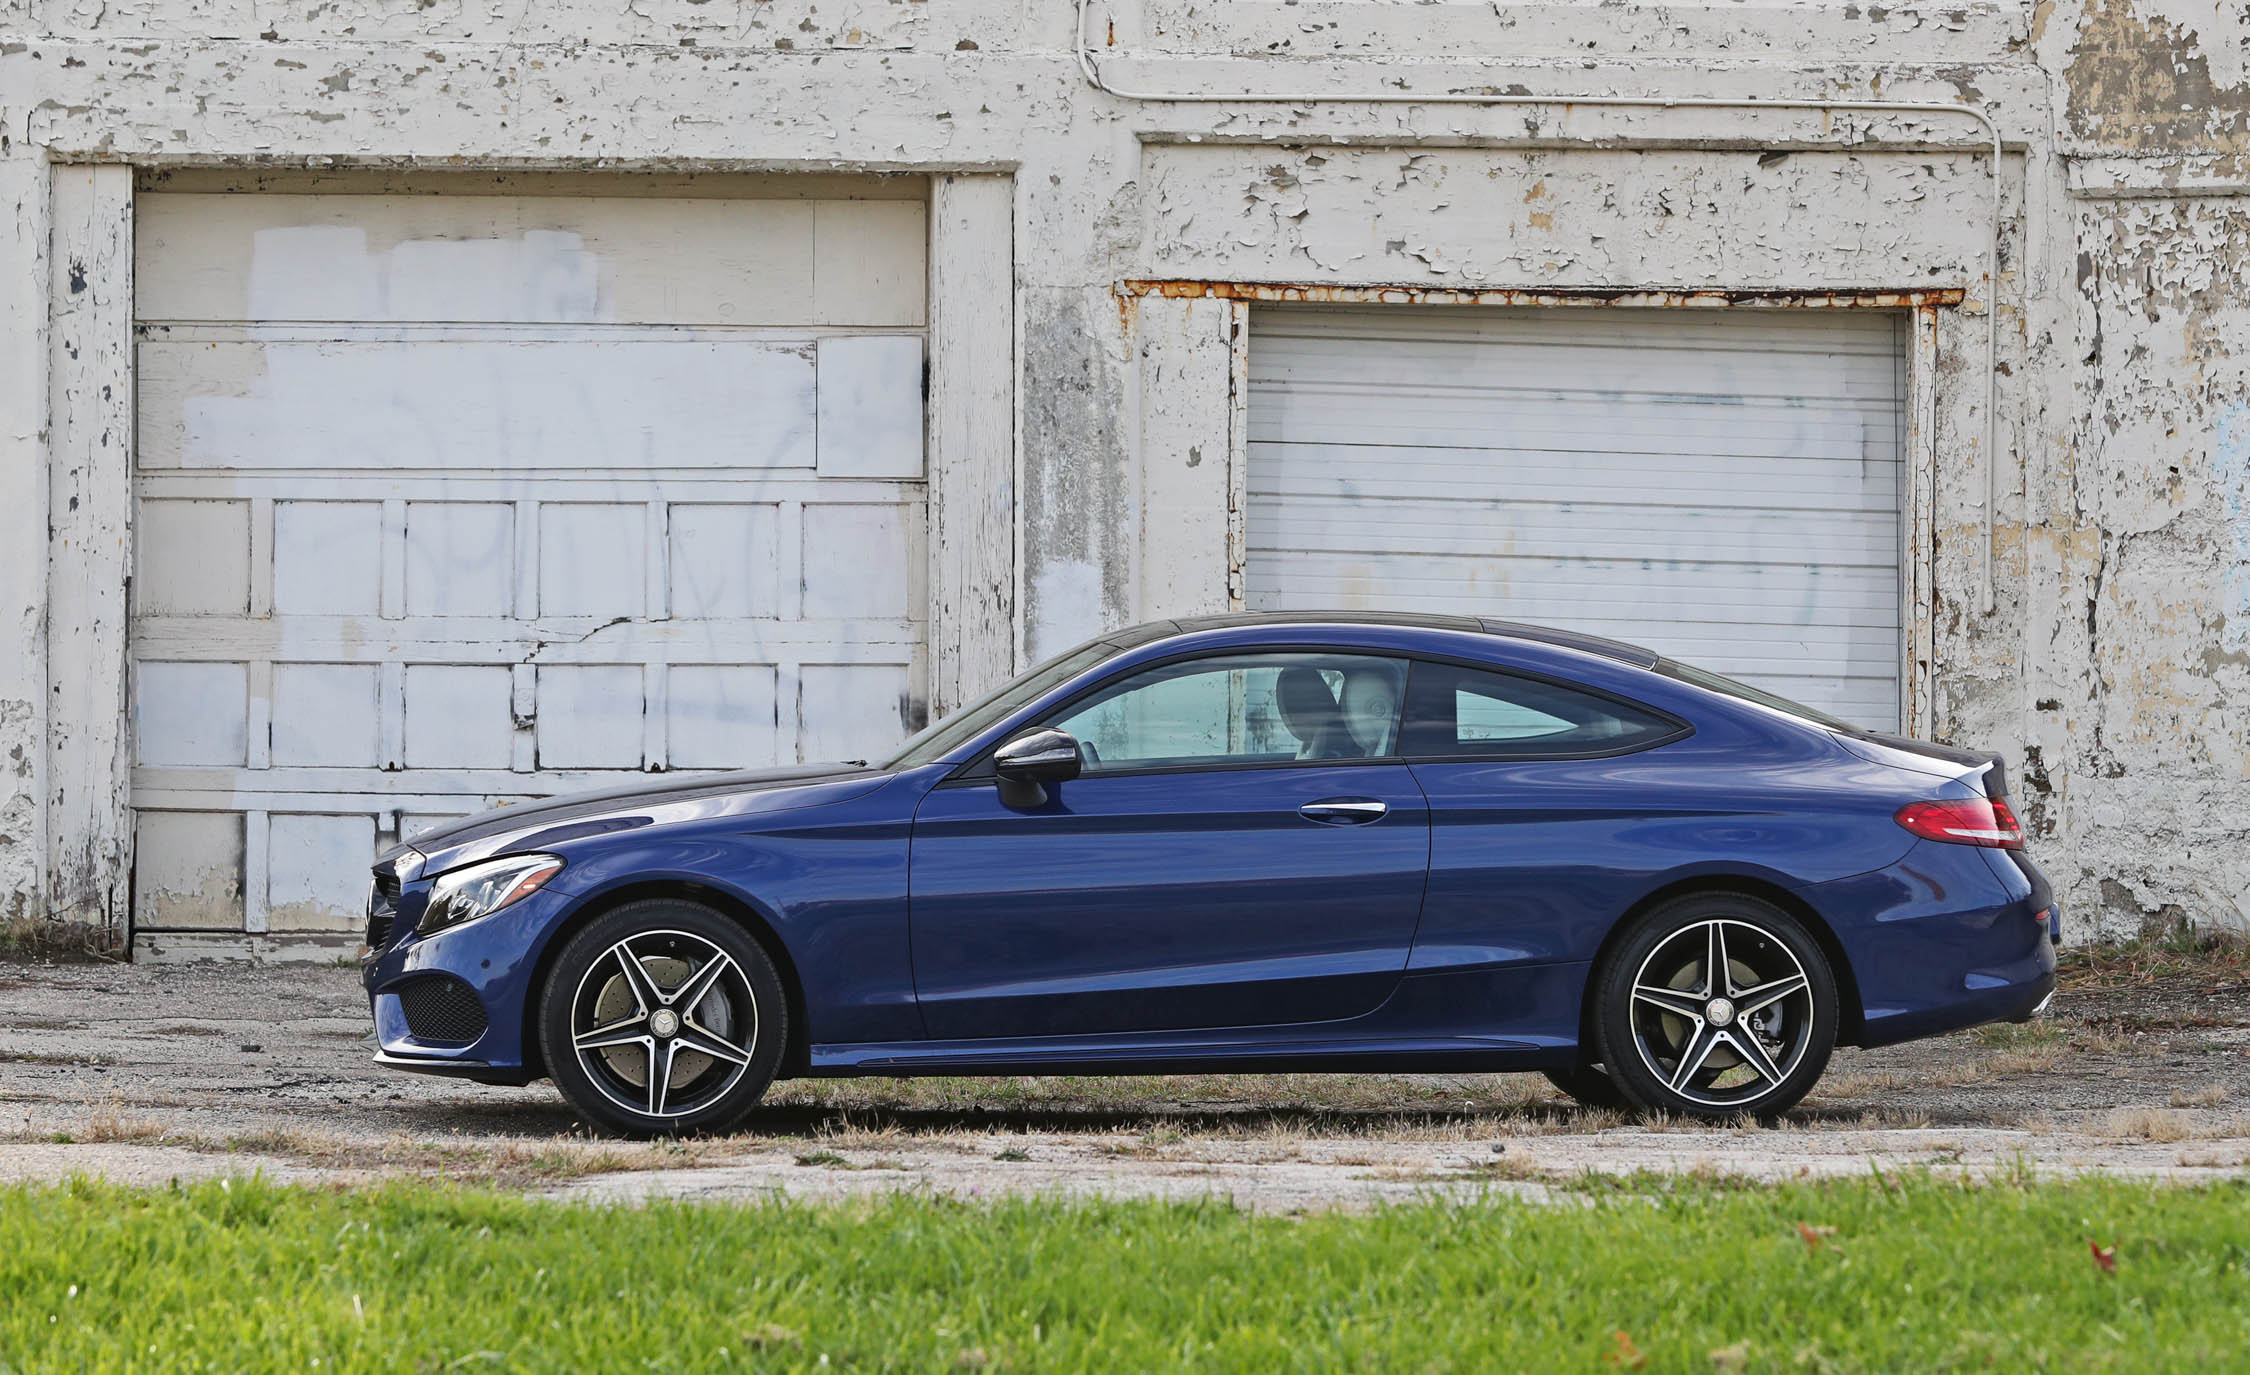 2017 Mercedes Benz C300 4MATIC Coupe Exterior Side (Photo 12 of 44)